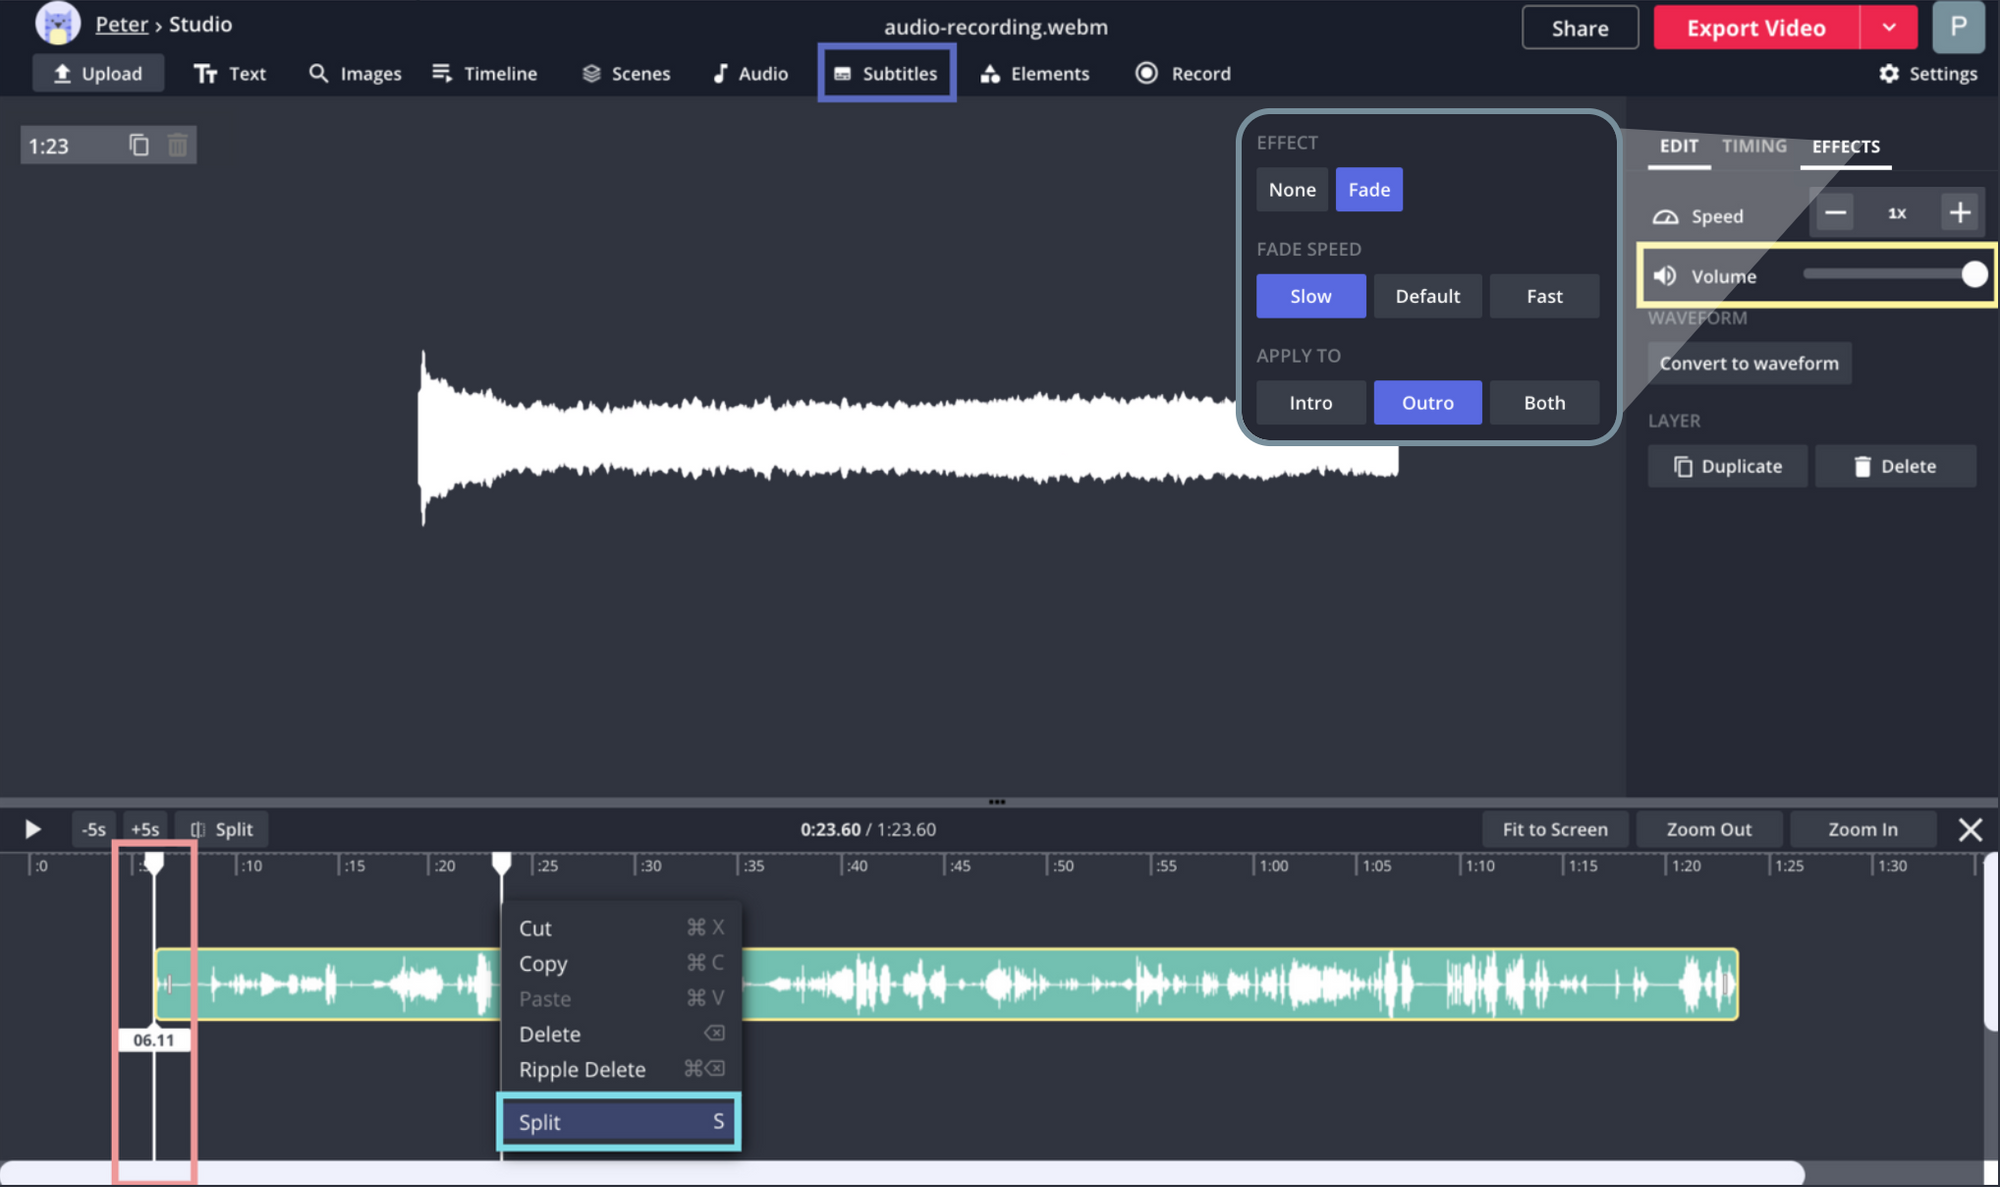 A screenshot showing multiple audio editing options in the Kapwing Studio.